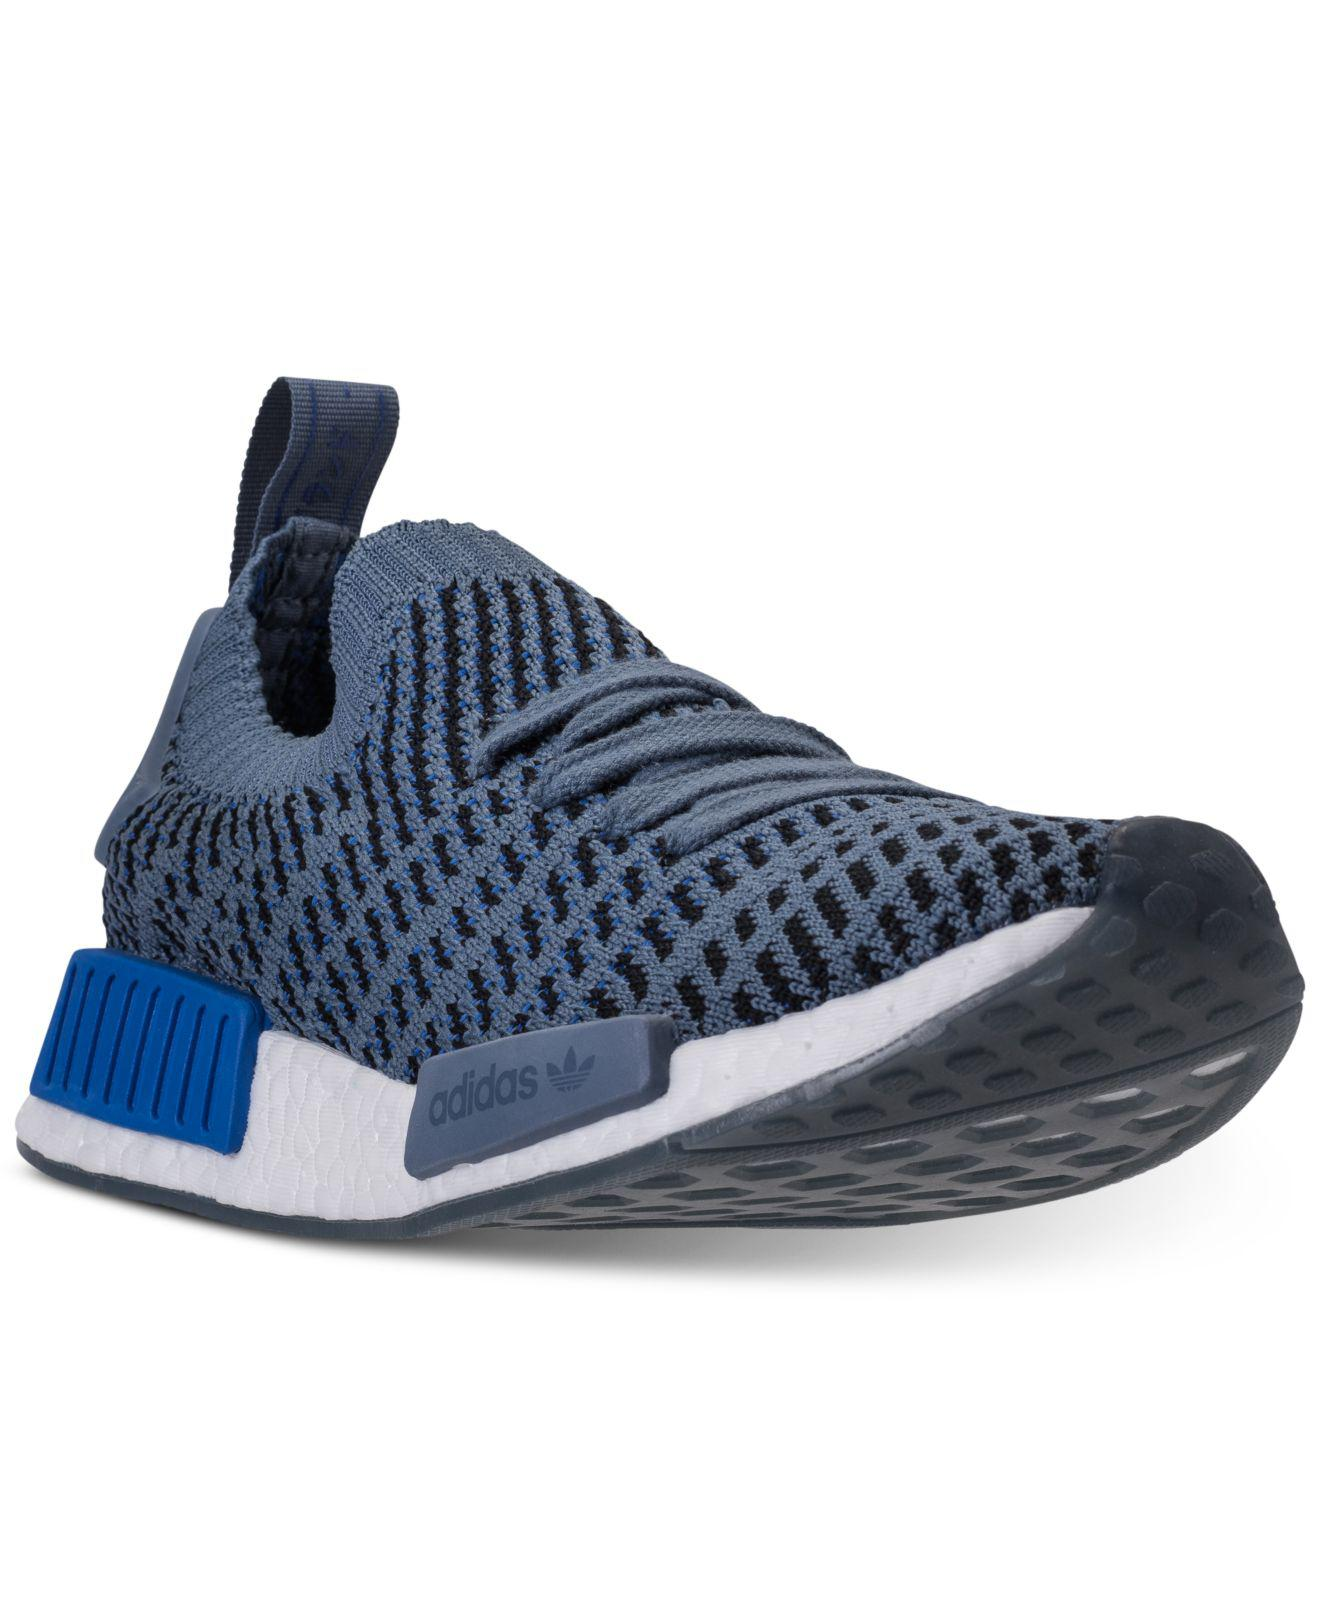 e4adfcc80 Lyst - adidas Nmd R1 Stlt Primeknit Casual Sneakers From Finish Line ...